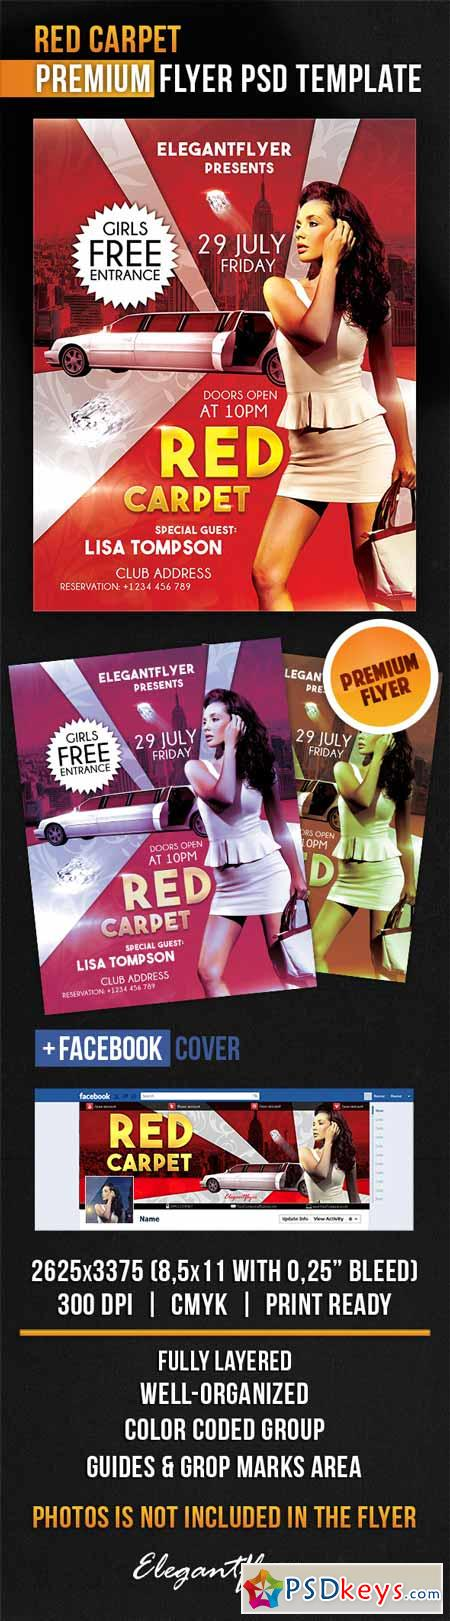 Red Carpet Flyer Template Free